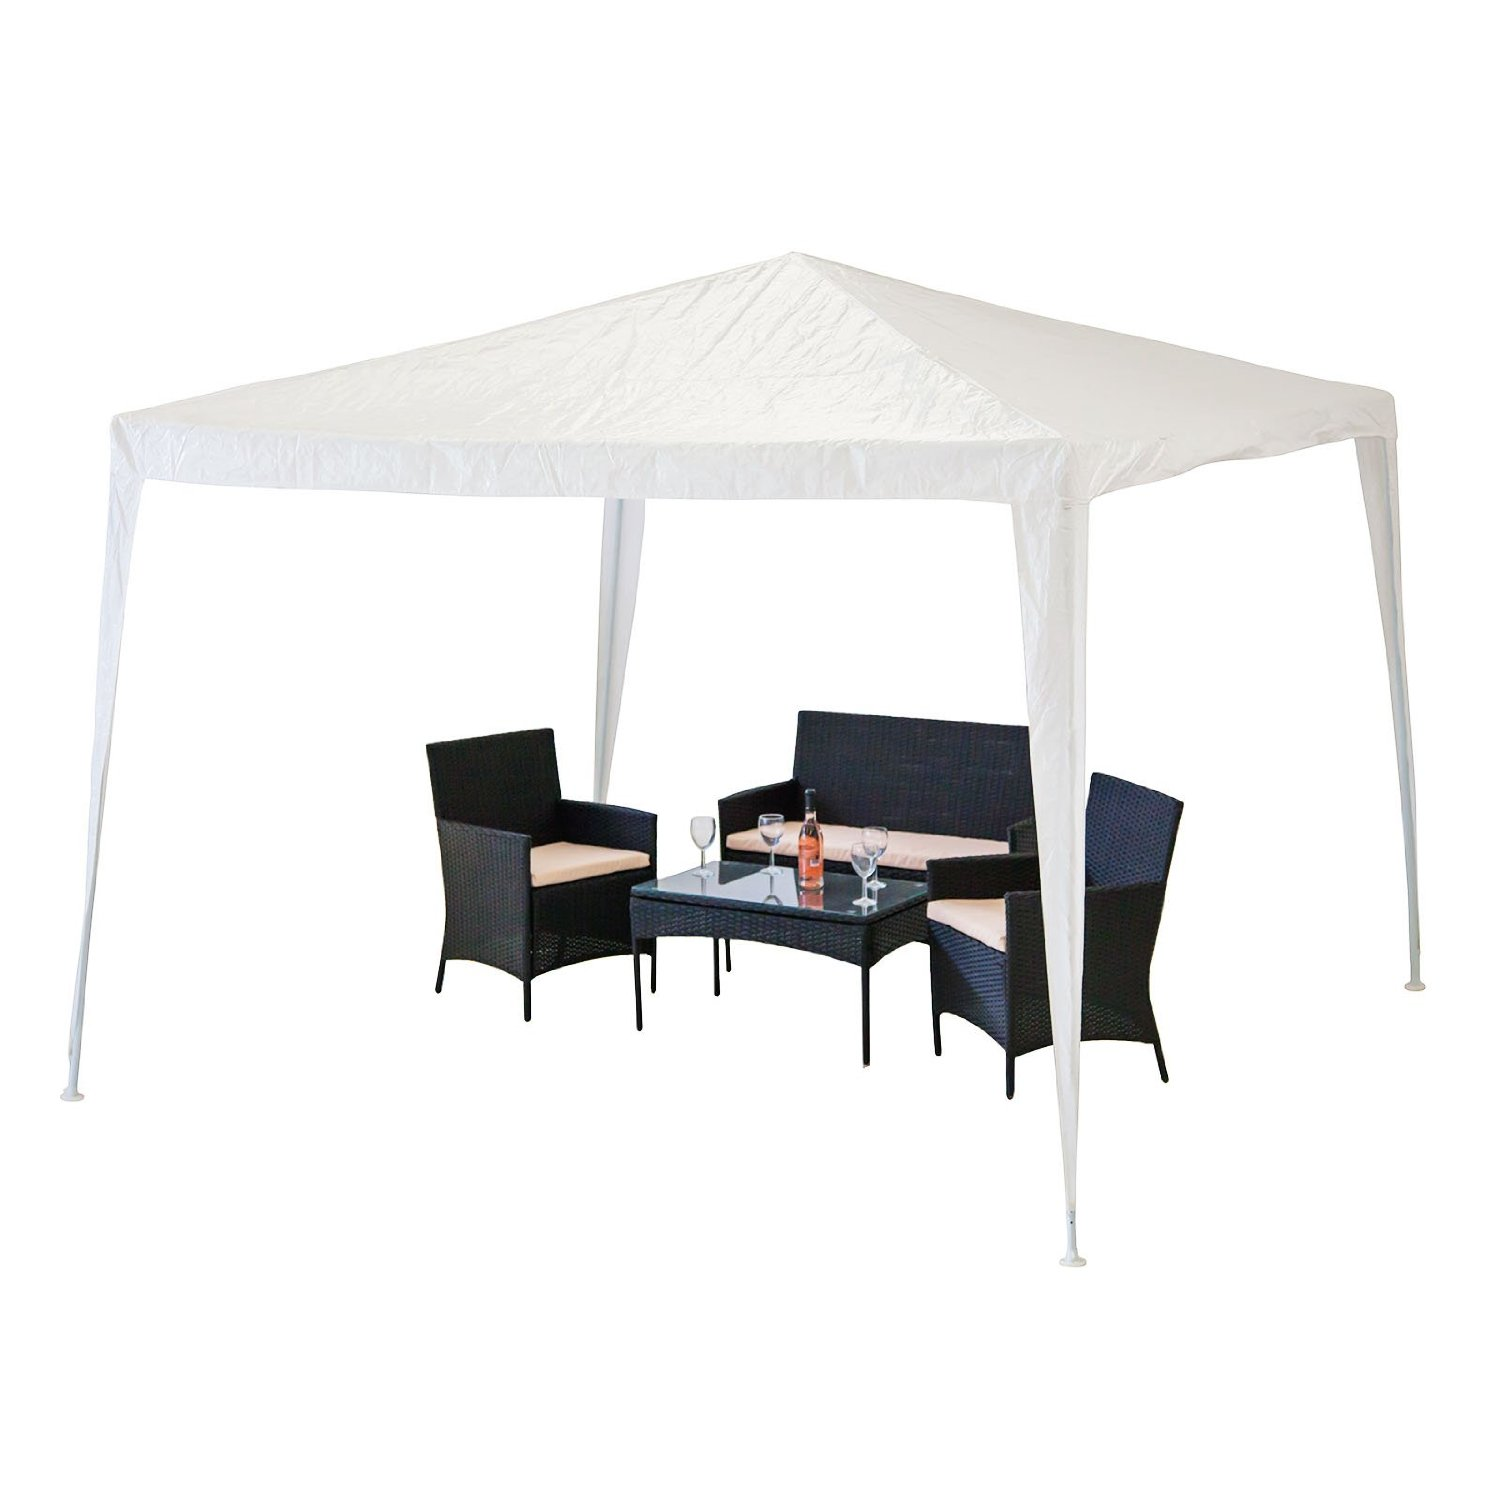 Alfresia Garden Gazebo in White